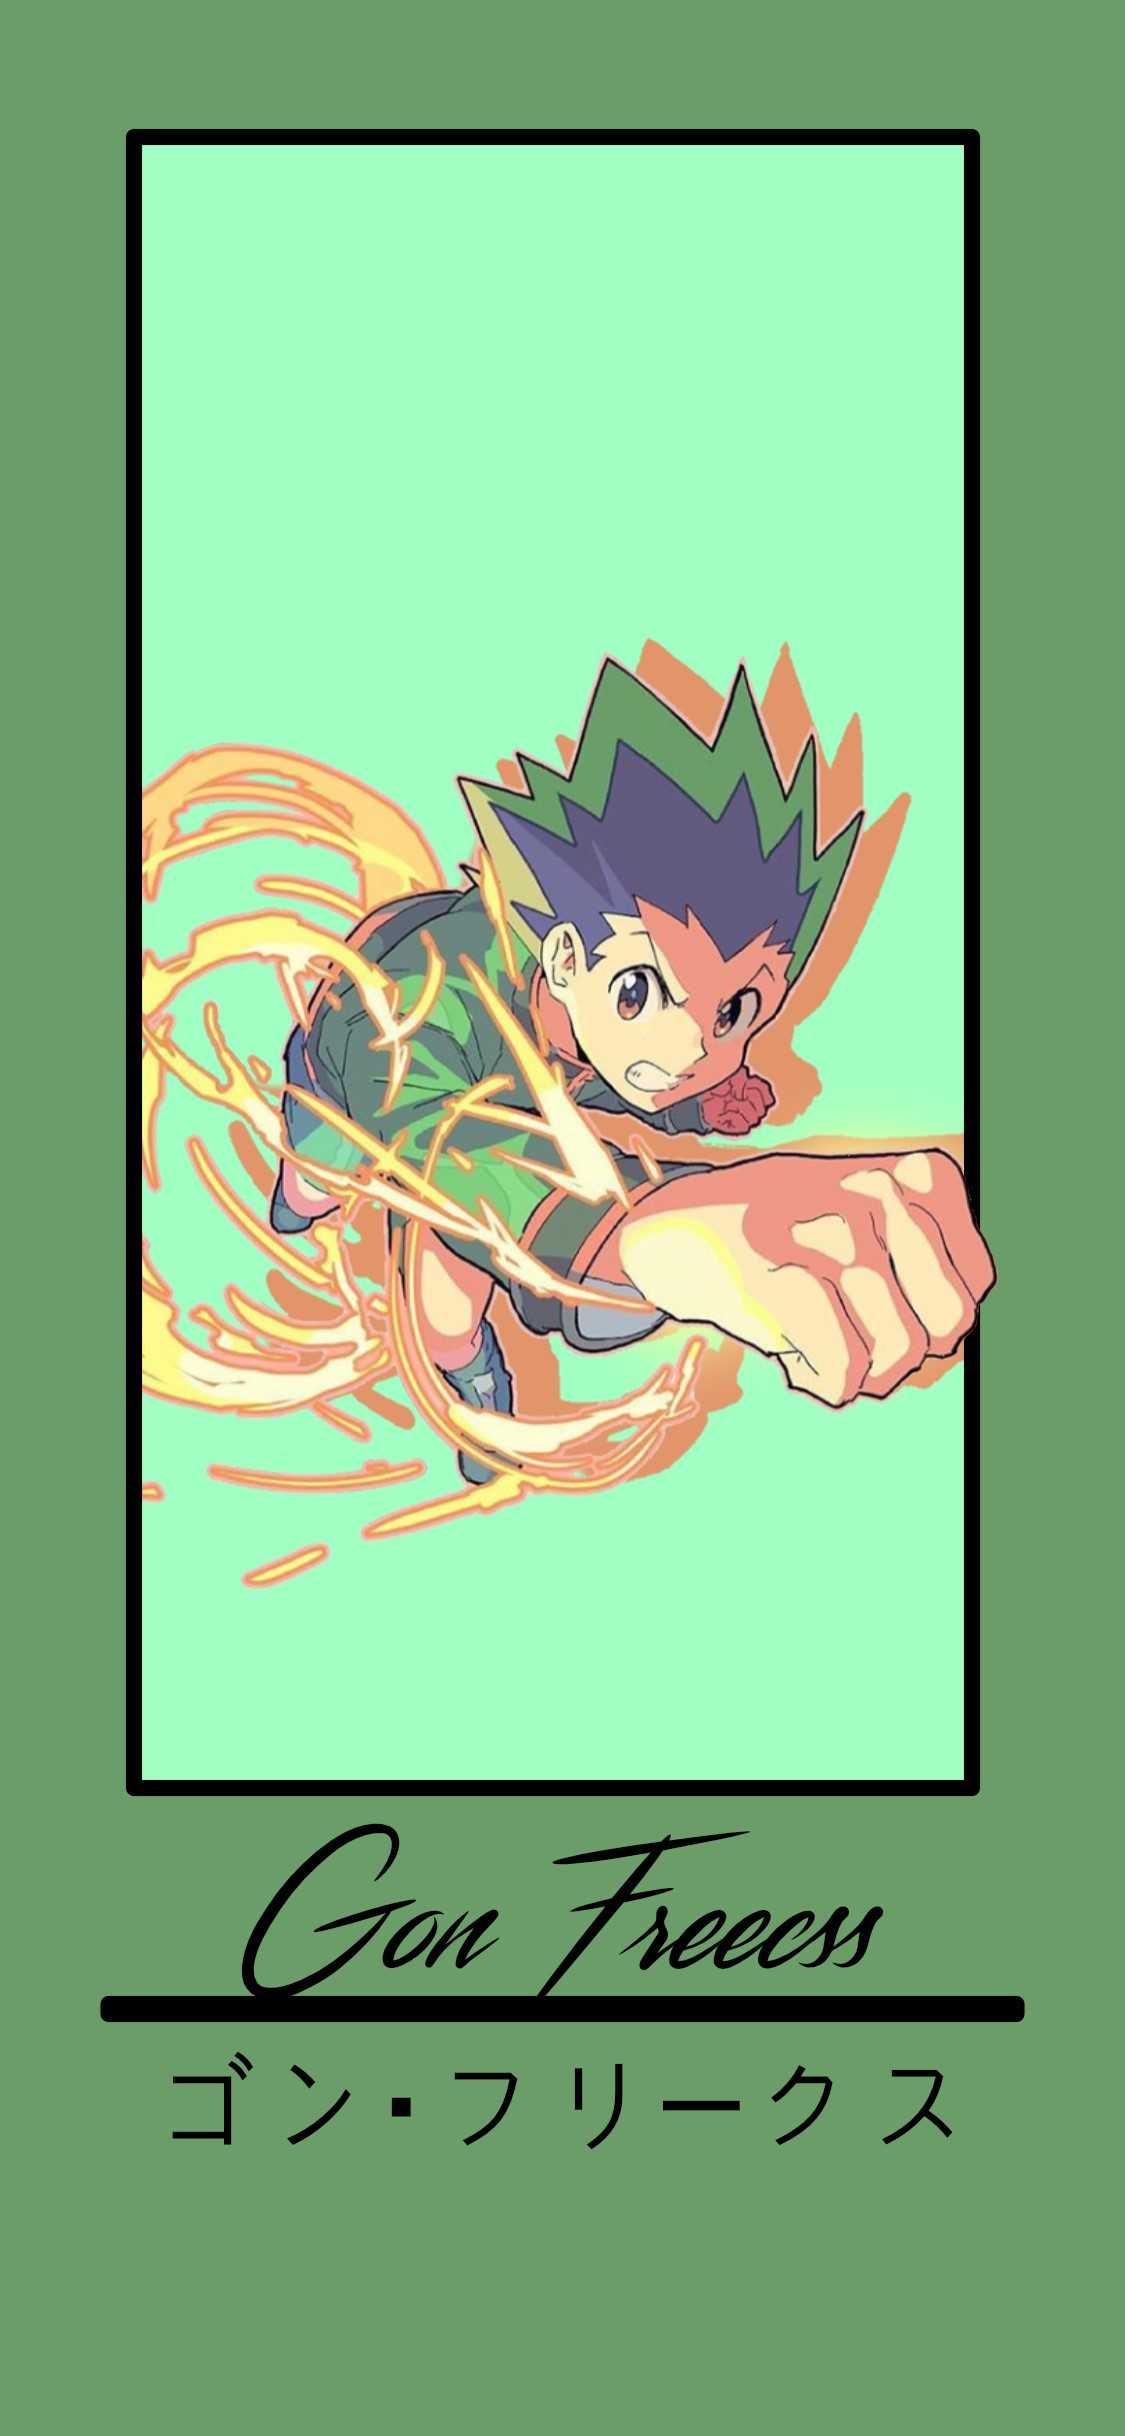 Gon Freecss Wallpapers 1